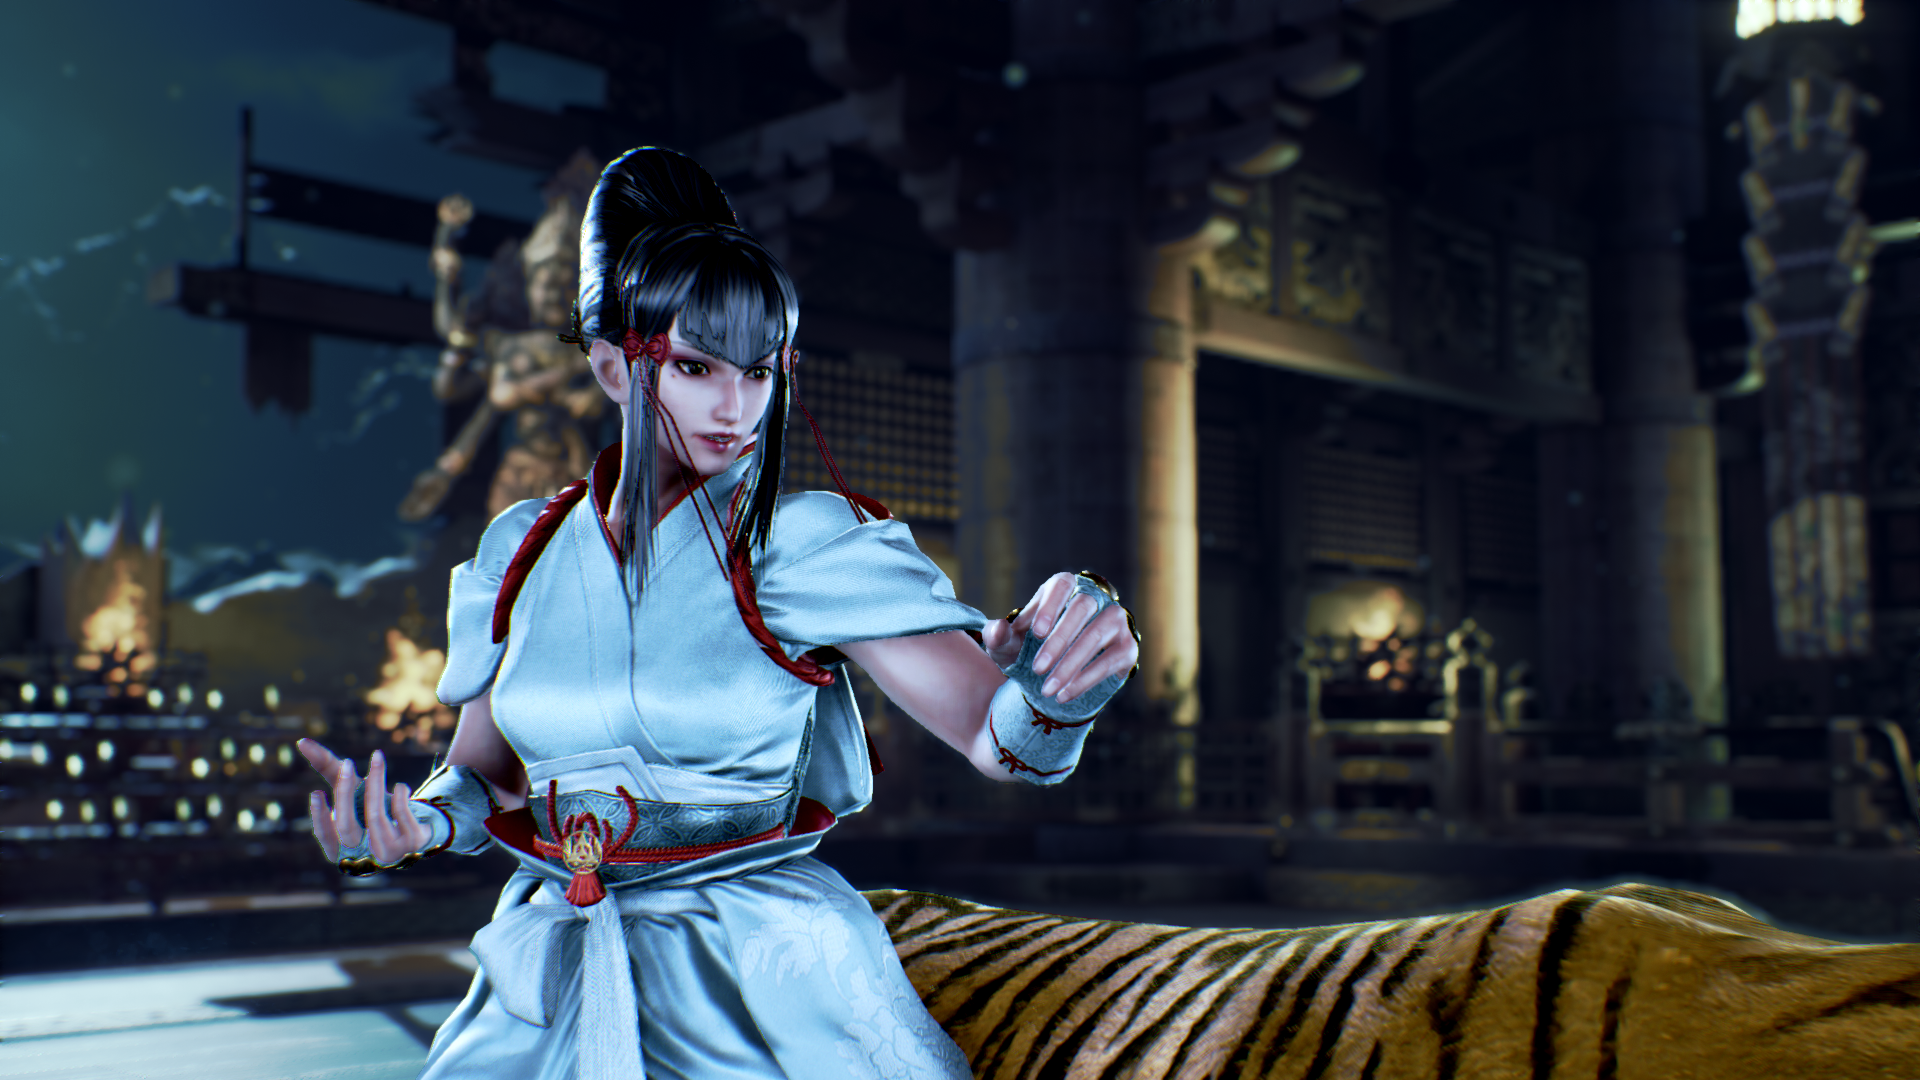 Photo of Tekken 7 –  Kazumi VS Lee Gameplay